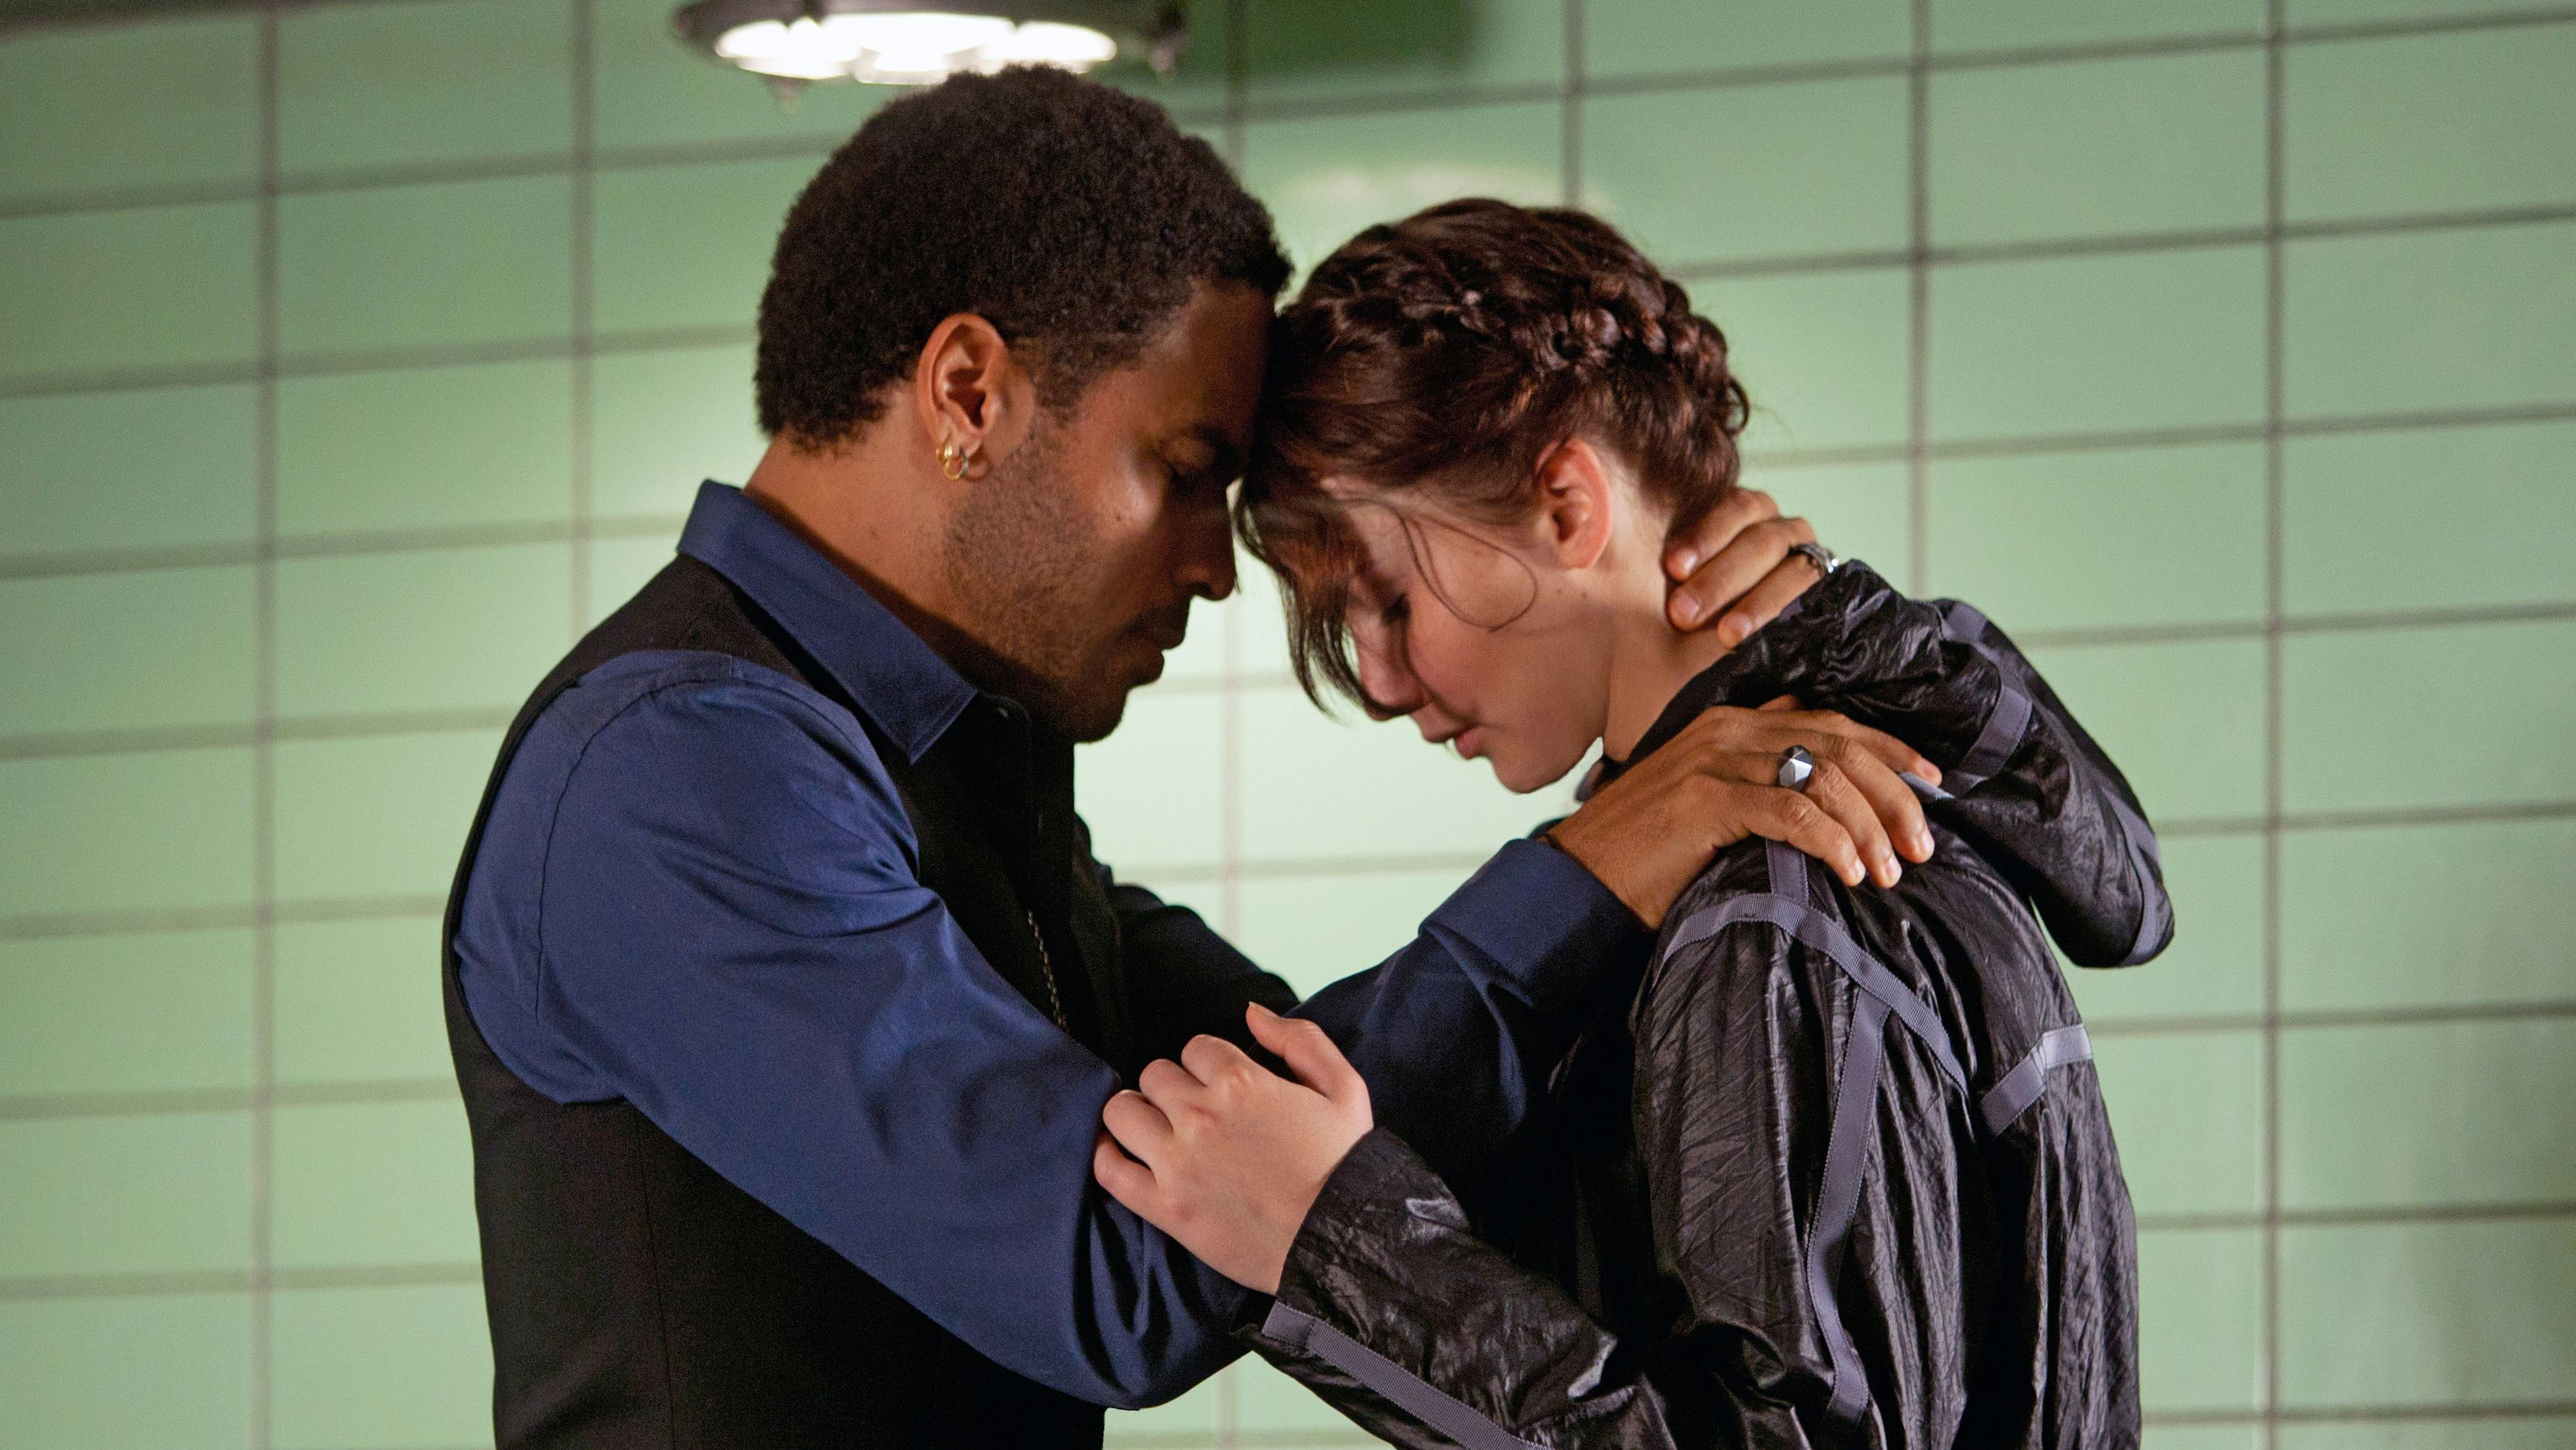 We Ranked Every Death In The Hunger Games Movies In Order Of